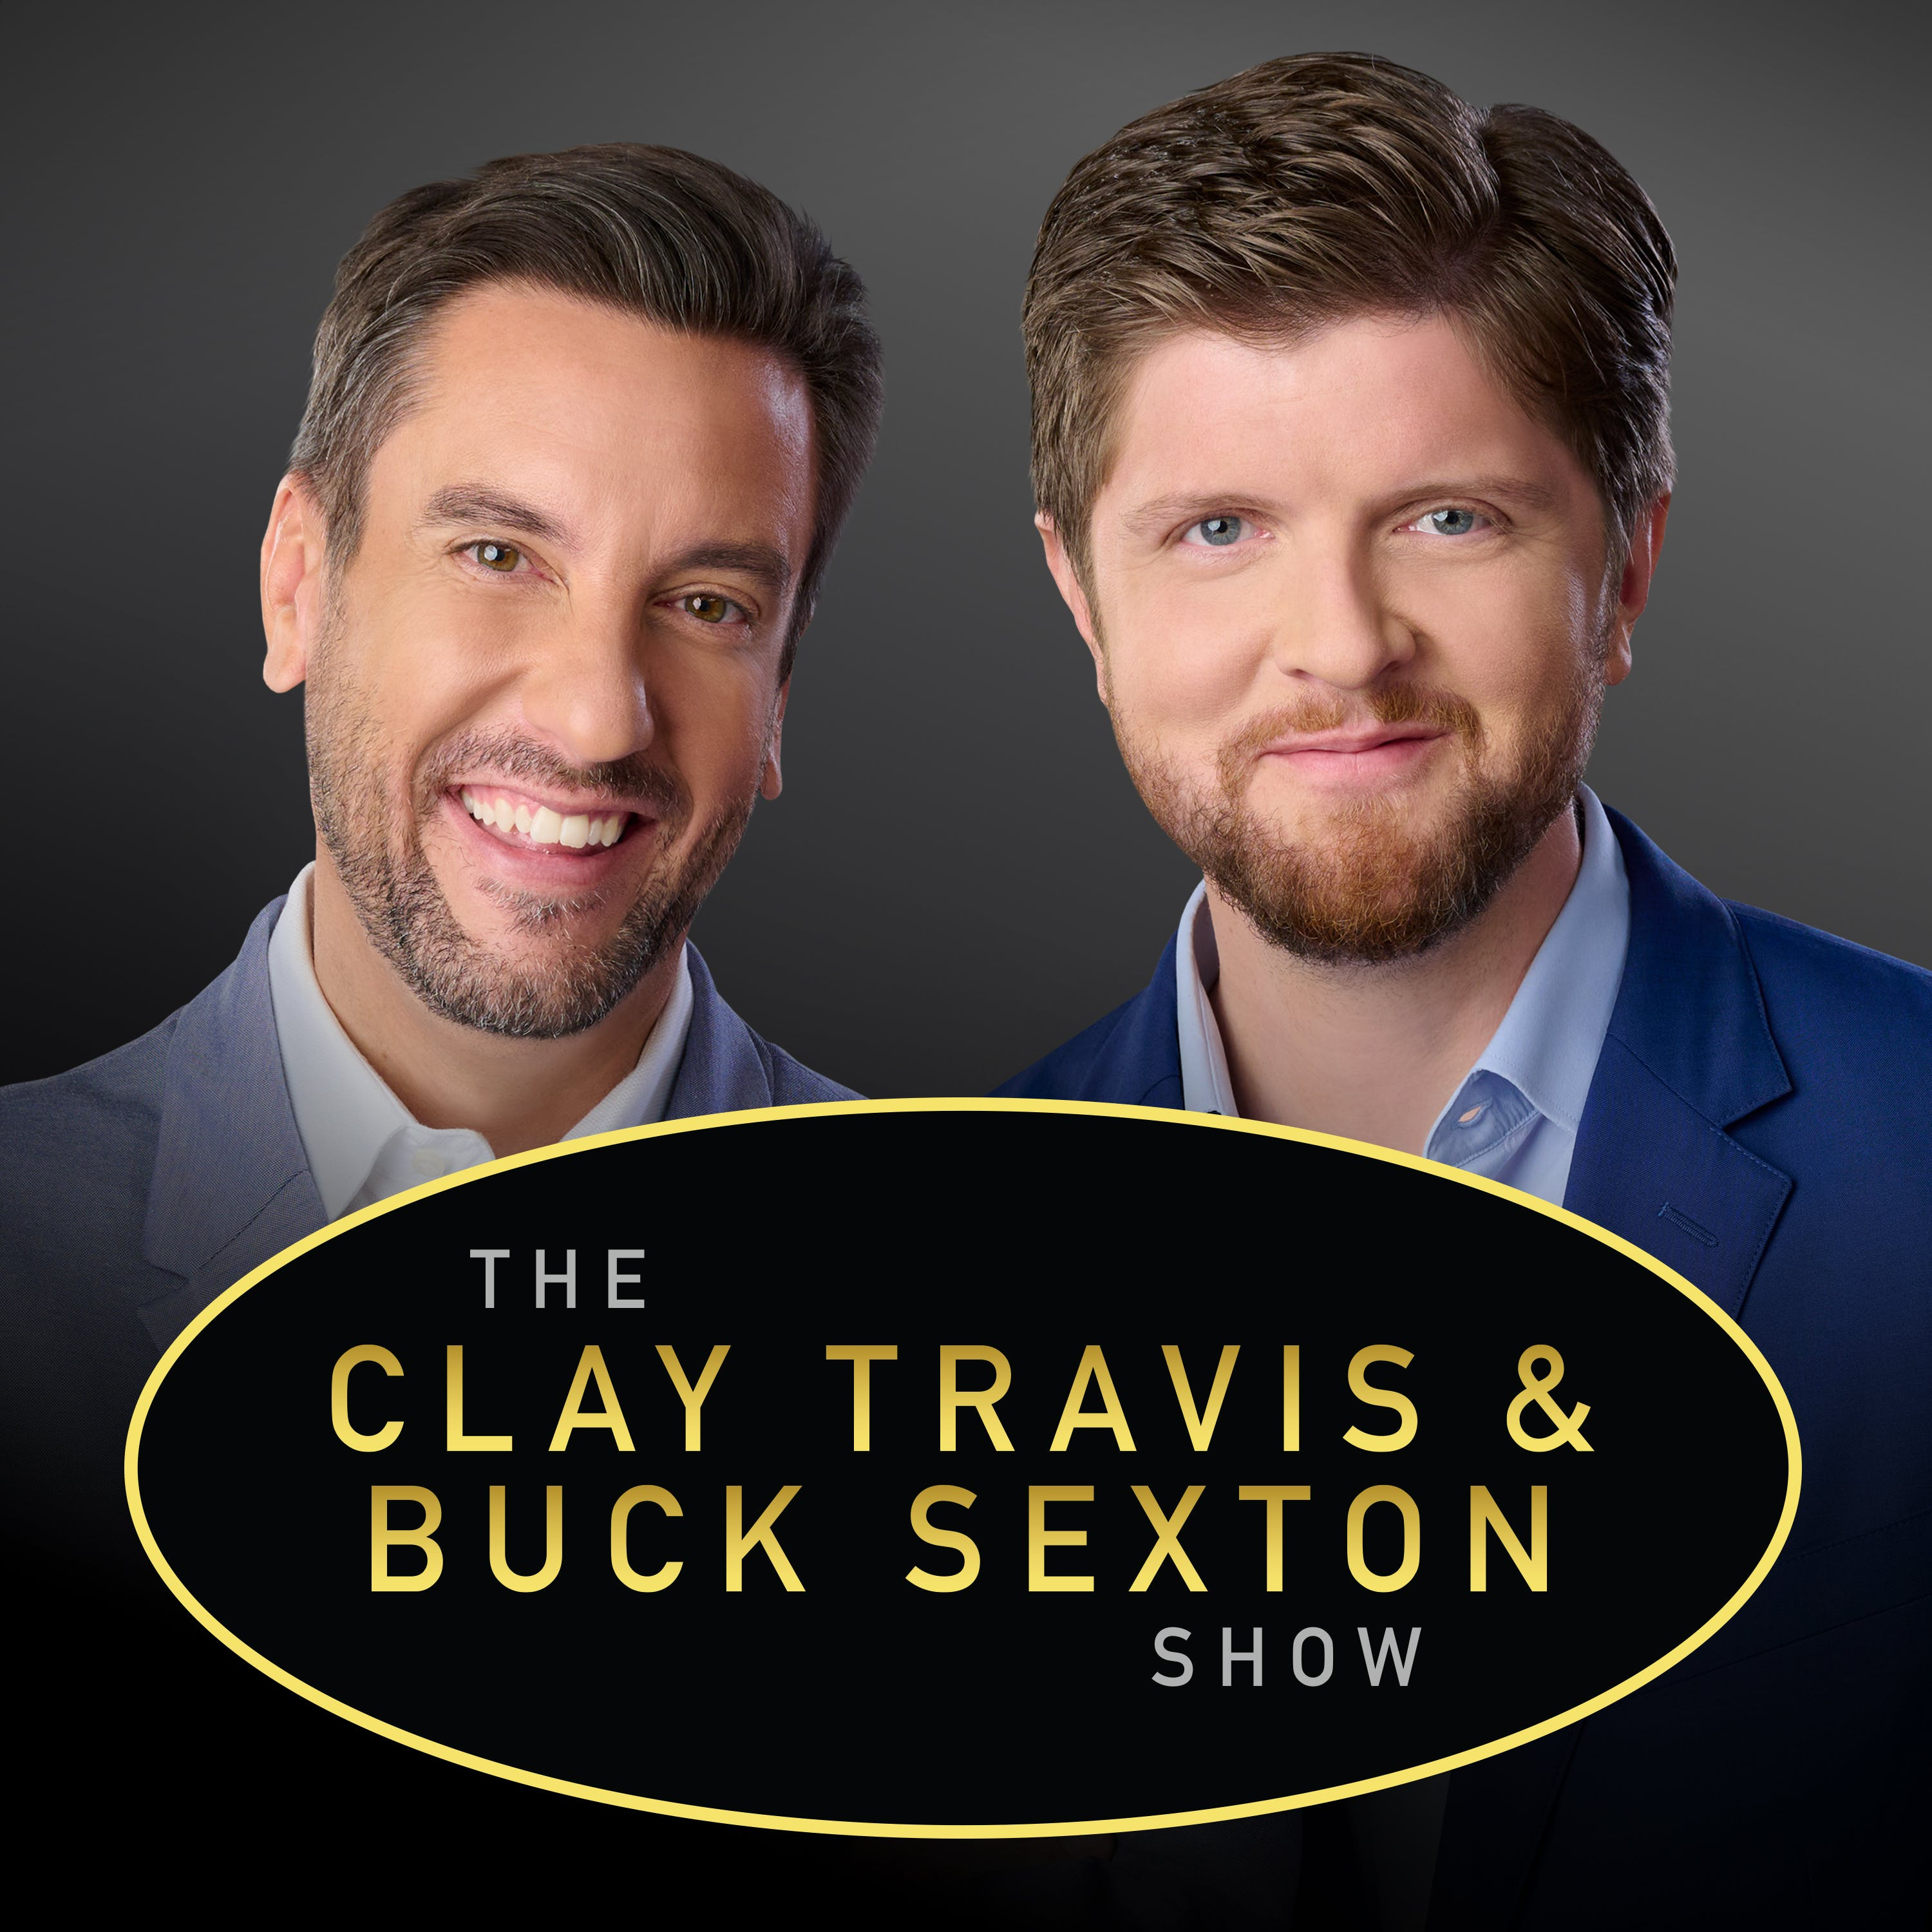 Clay Travis and Buck Sexton Show H3 - Sep 20 2021